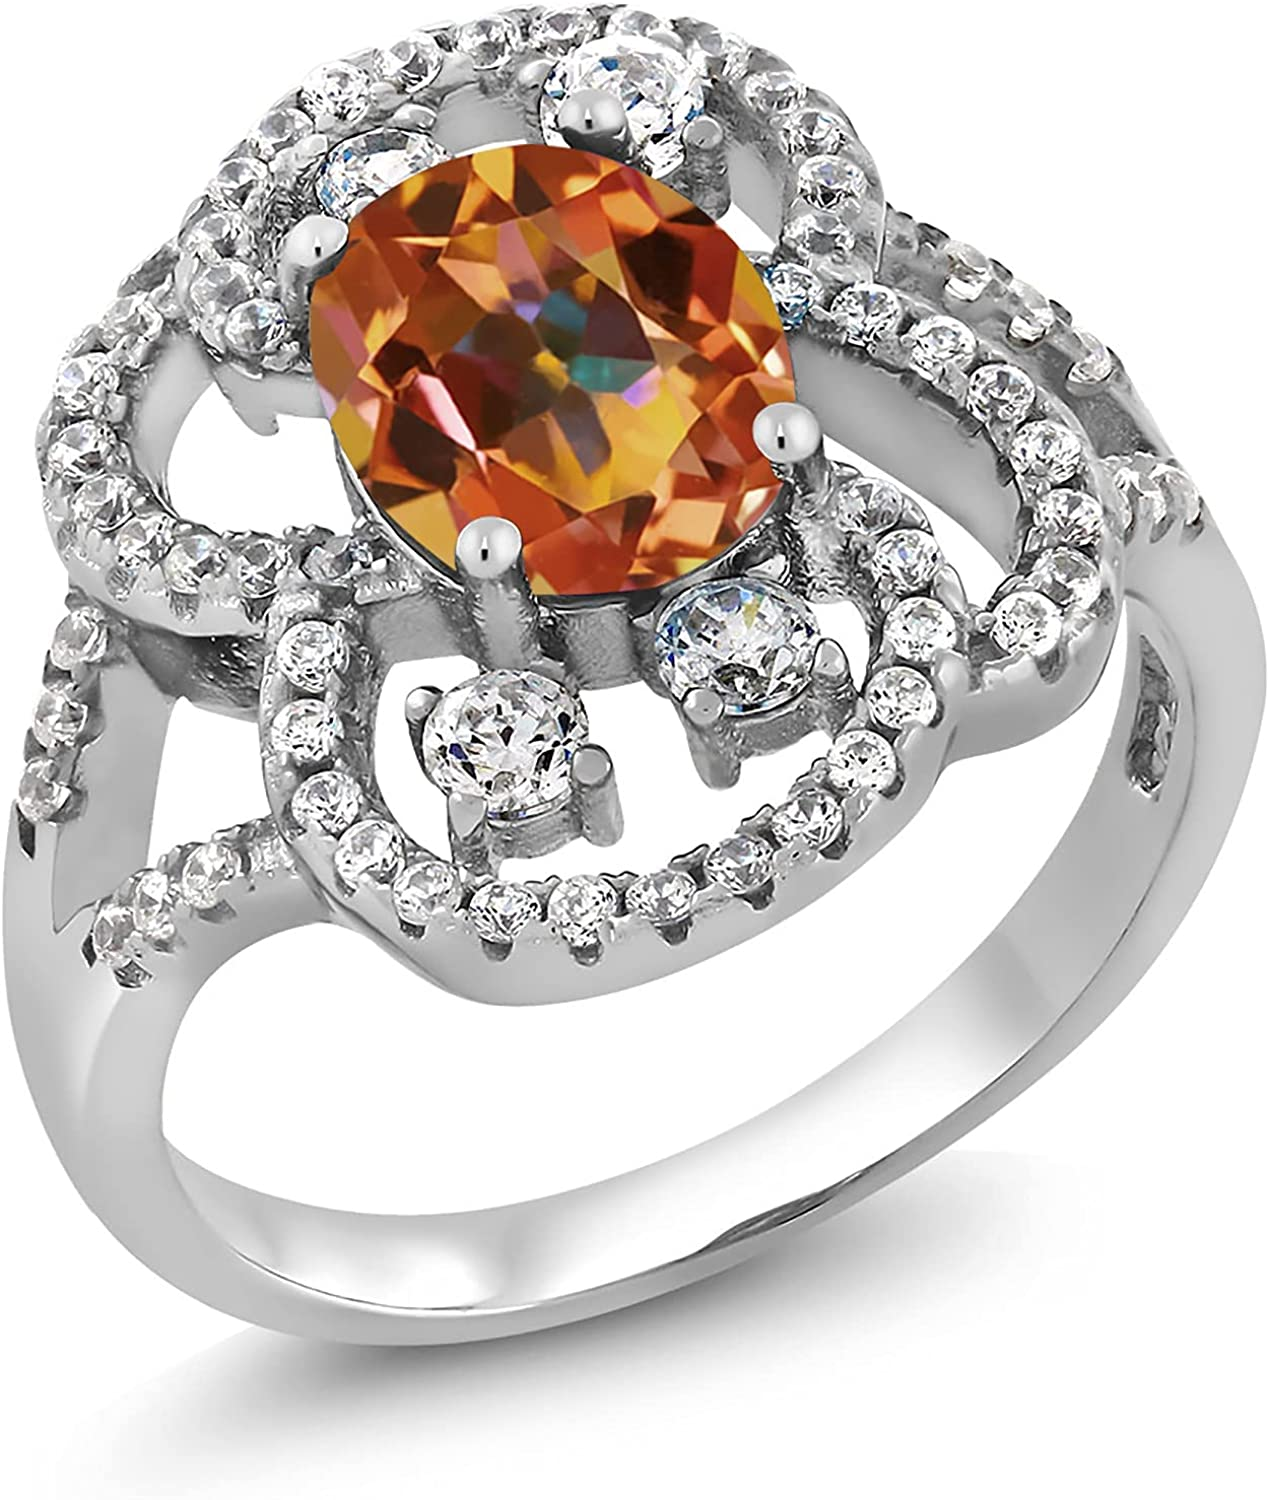 Gem Stone King Special sale item 2.82 Fort Worth Mall Ct Oval Mystic Sterling Ecstasy Topaz 925 Si